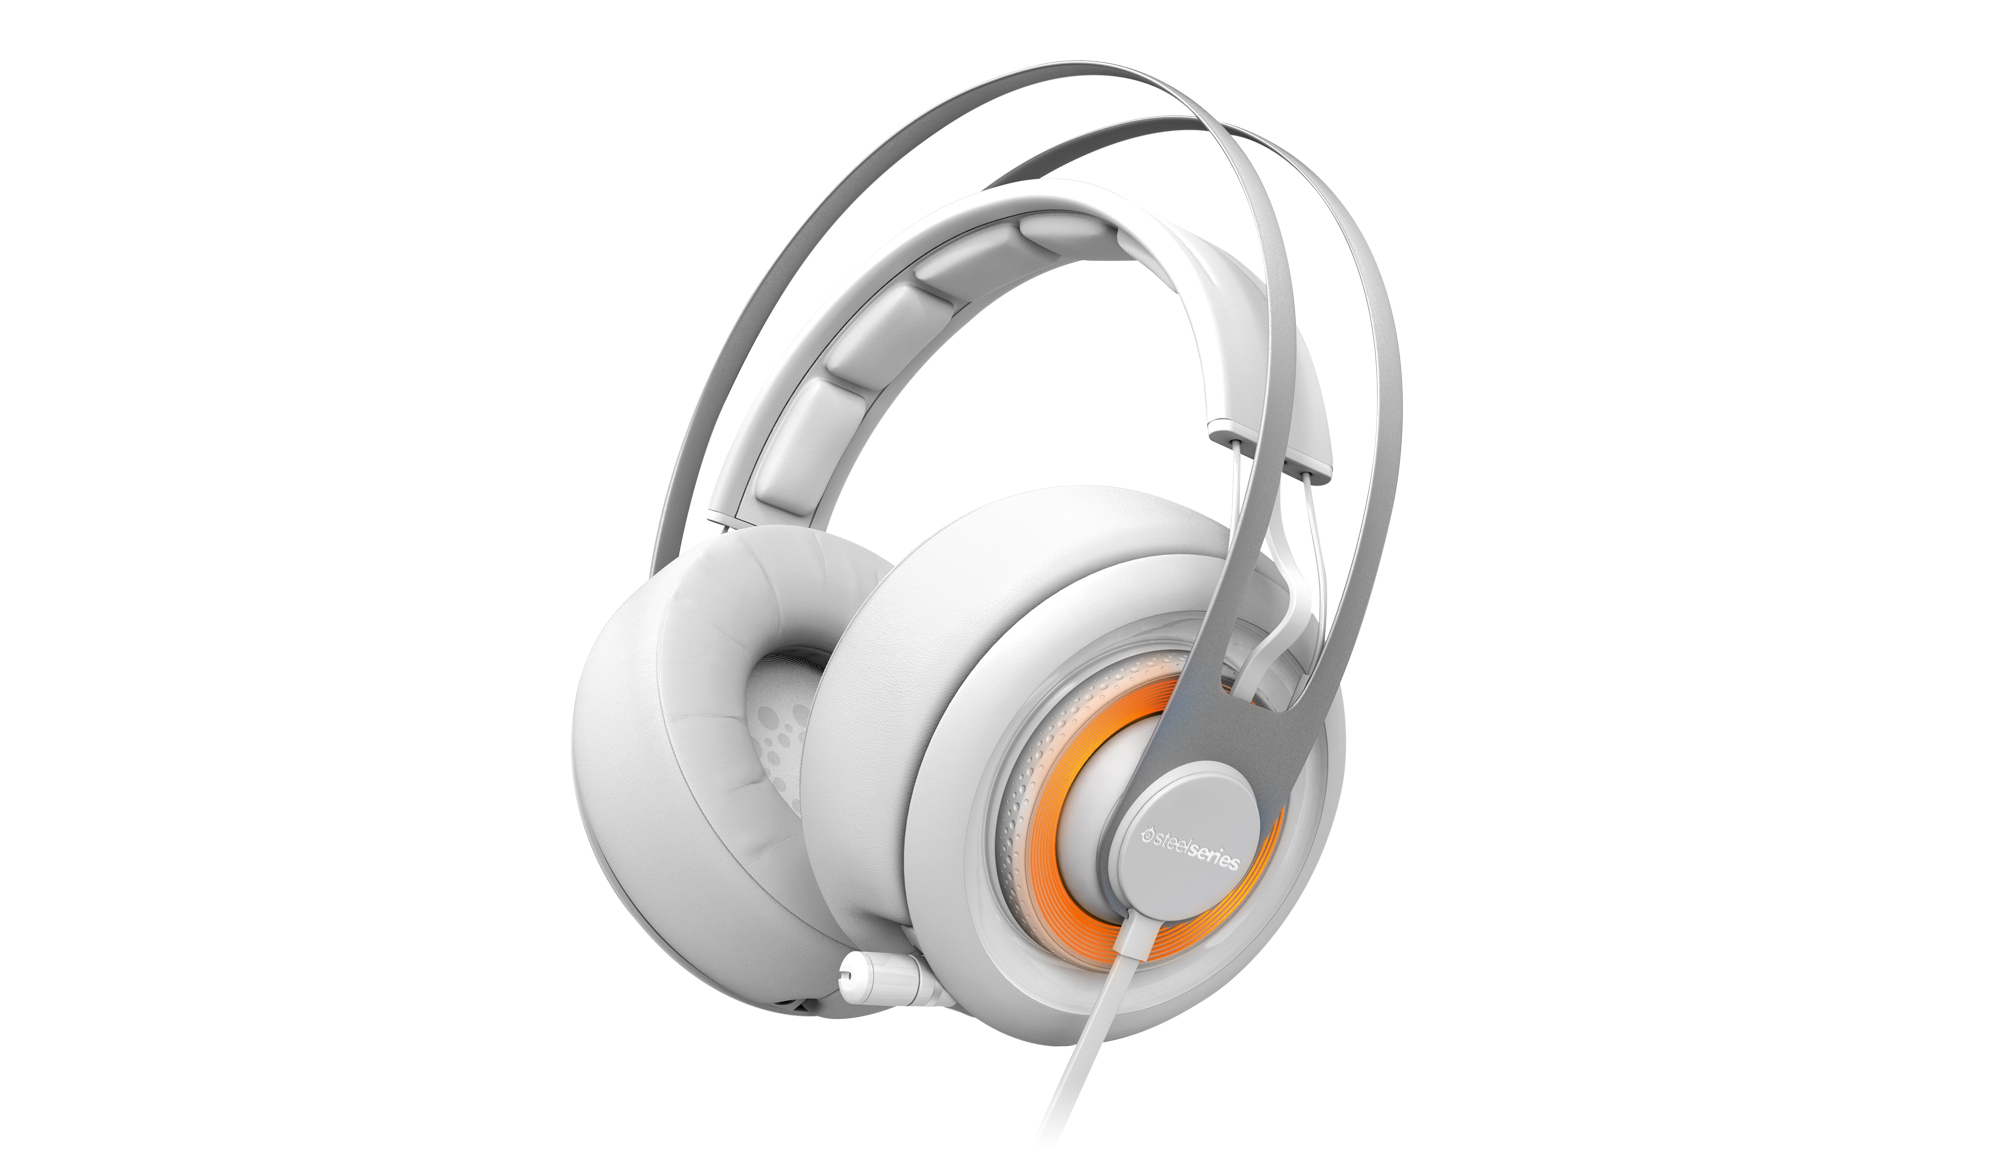 SteelSeries_Siberia Elite White_Angle shot.jpg